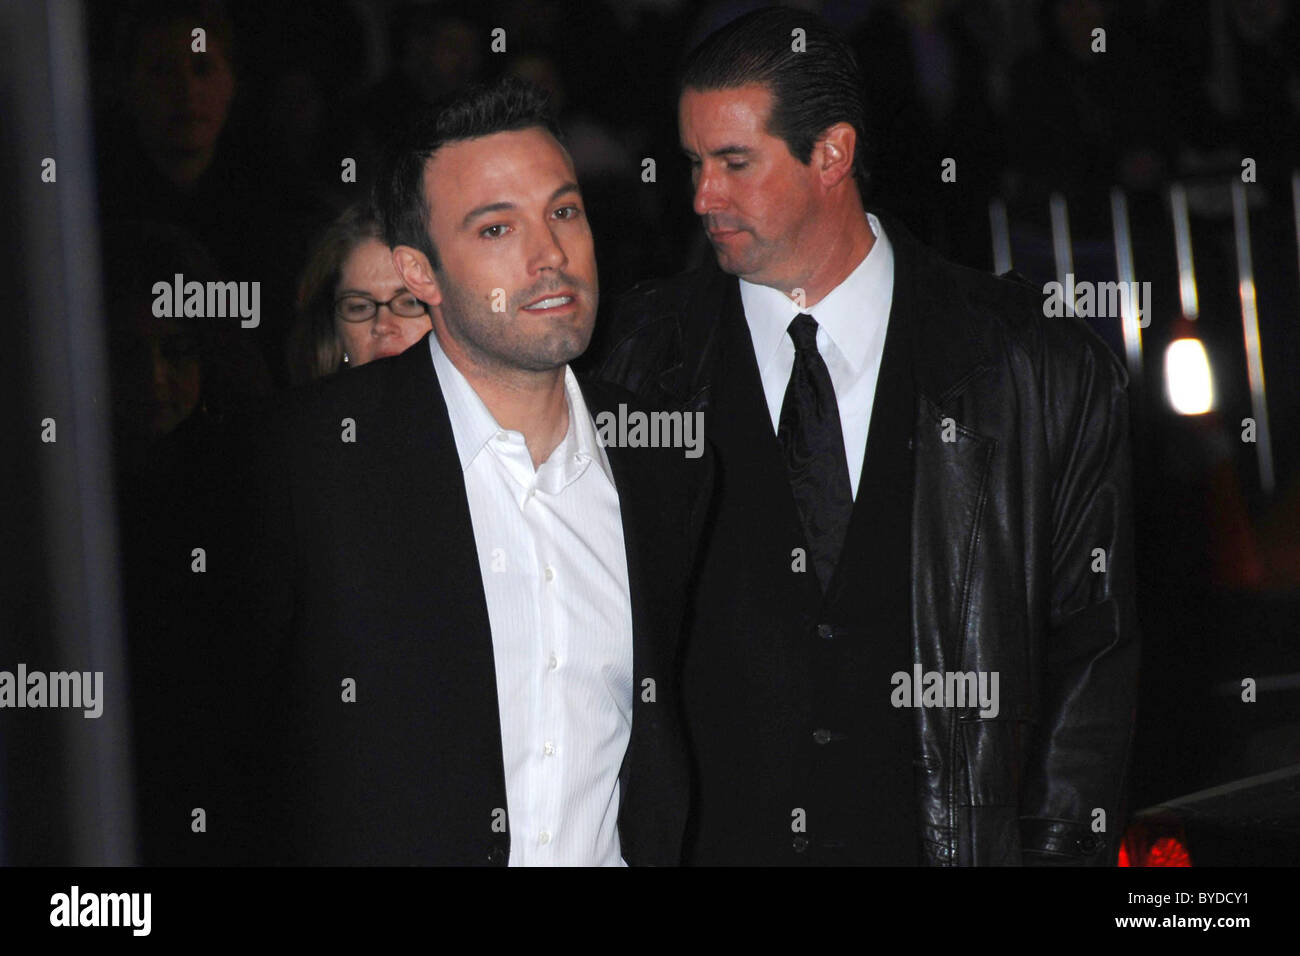 Ben Affleck World Premiere of 'Smokin' Aces' held at the Grauman's Chinese Theatre Hollywood, California - Stock Image